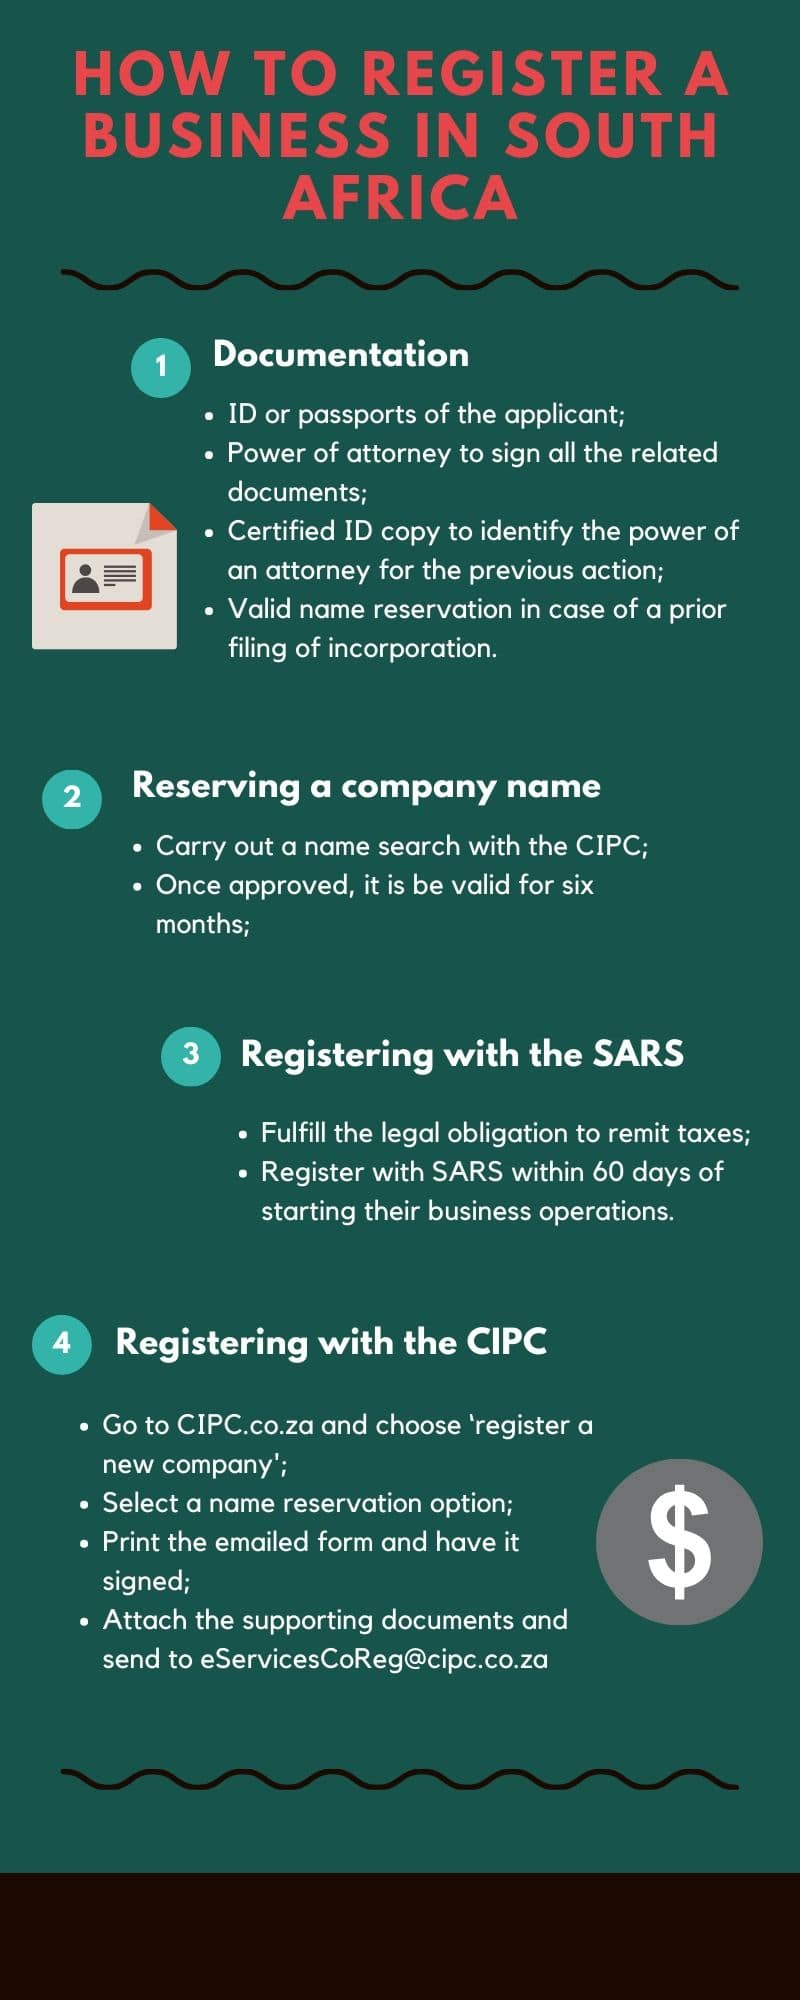 How to register a business in South Africa